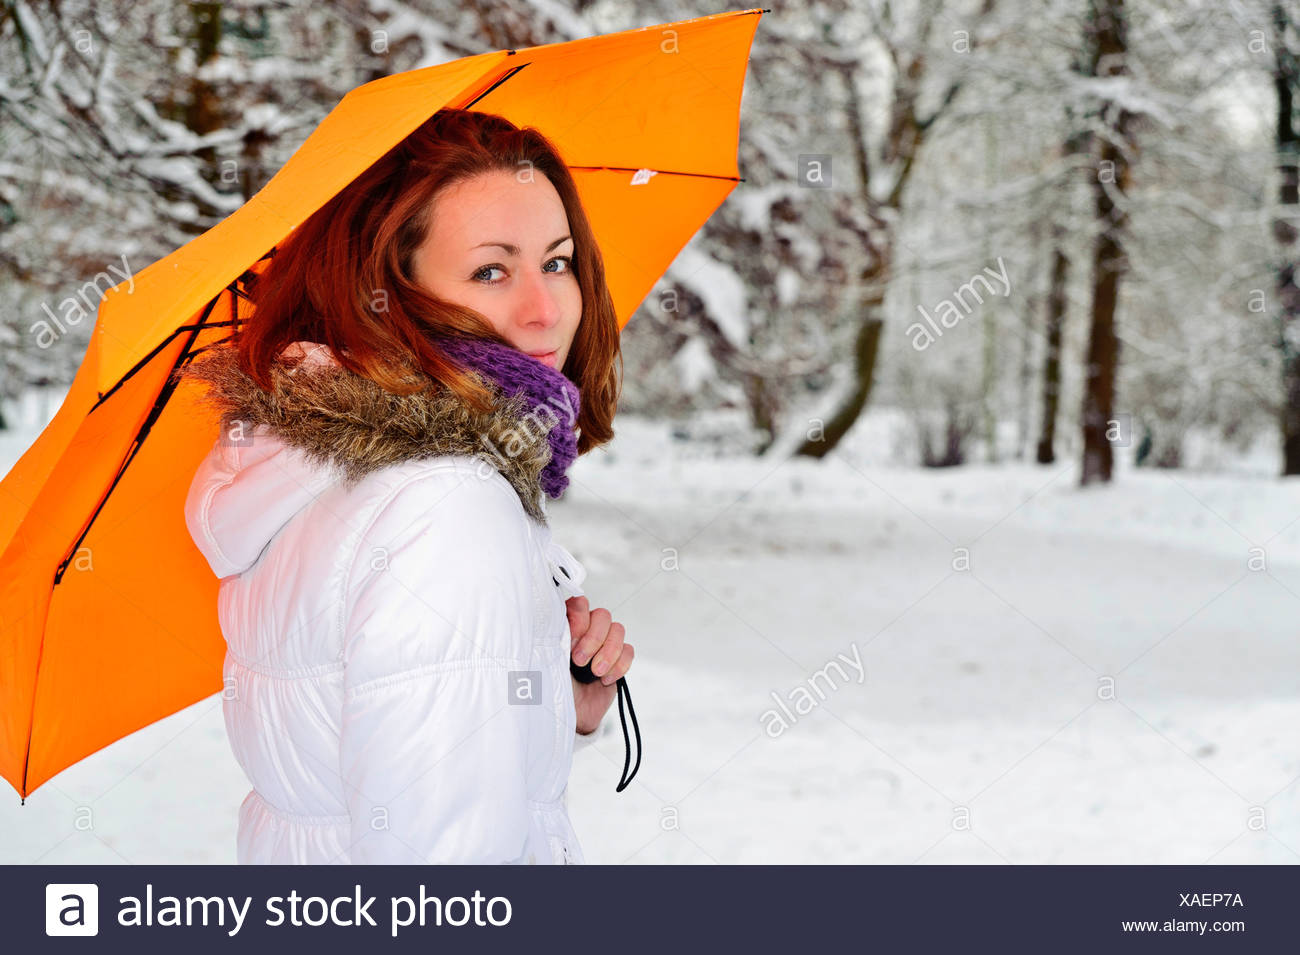 Young woman holding a yellow umbrella in a wintry forest - Stock Image